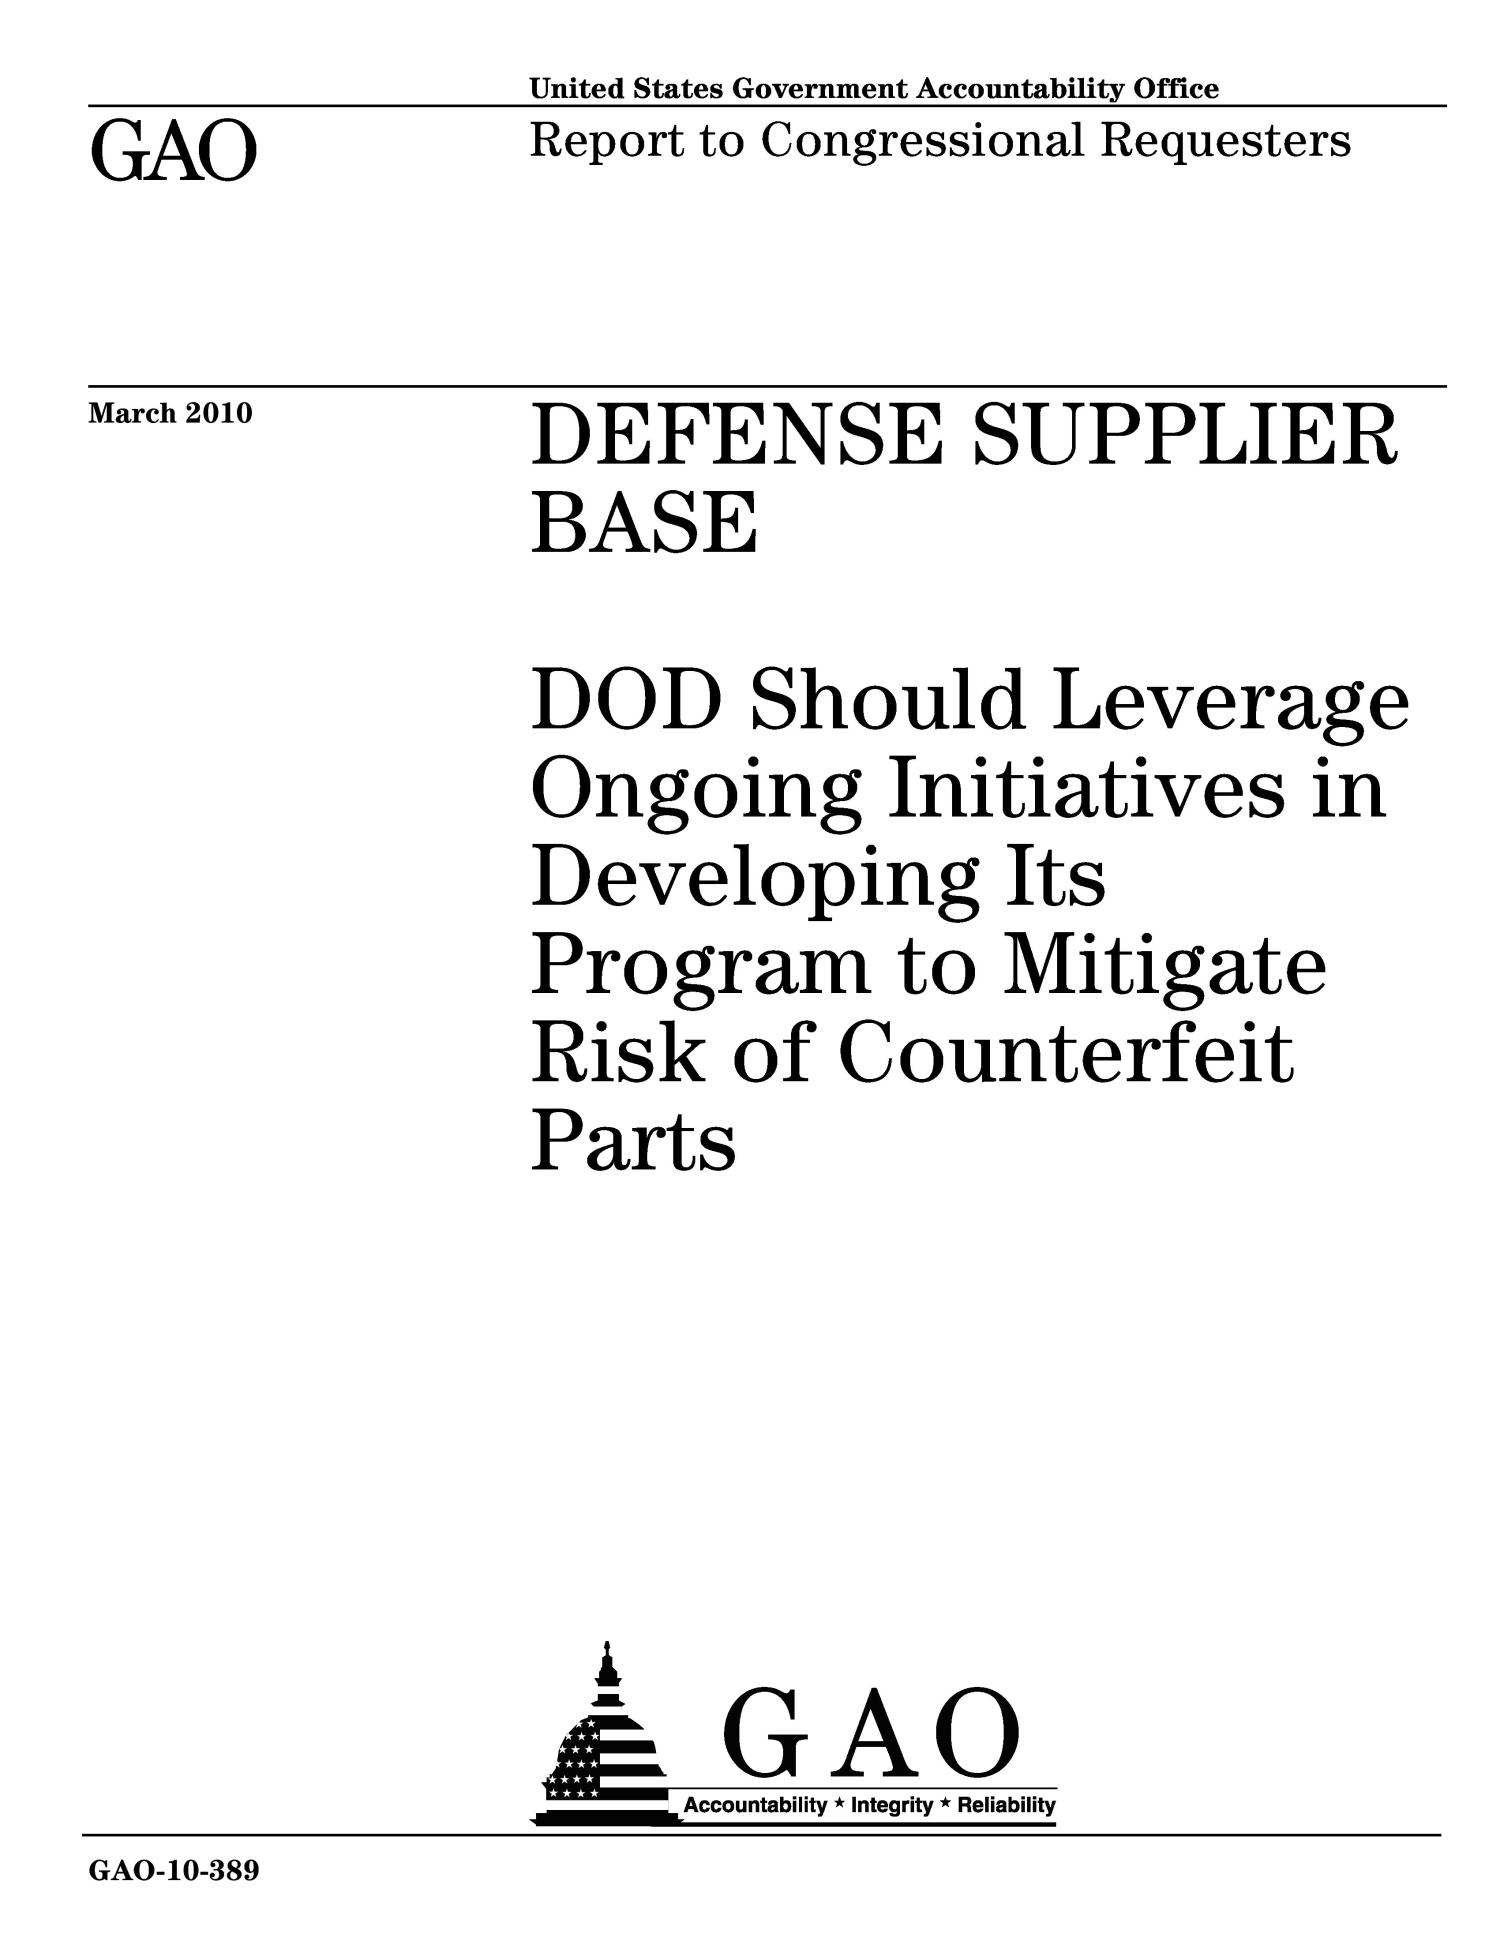 Defense Supplier Base: DOD Should Leverage Ongoing Initiatives in Developing Its Program to Mitigate Risk of Counterfeit Parts                                                                                                      [Sequence #]: 1 of 35